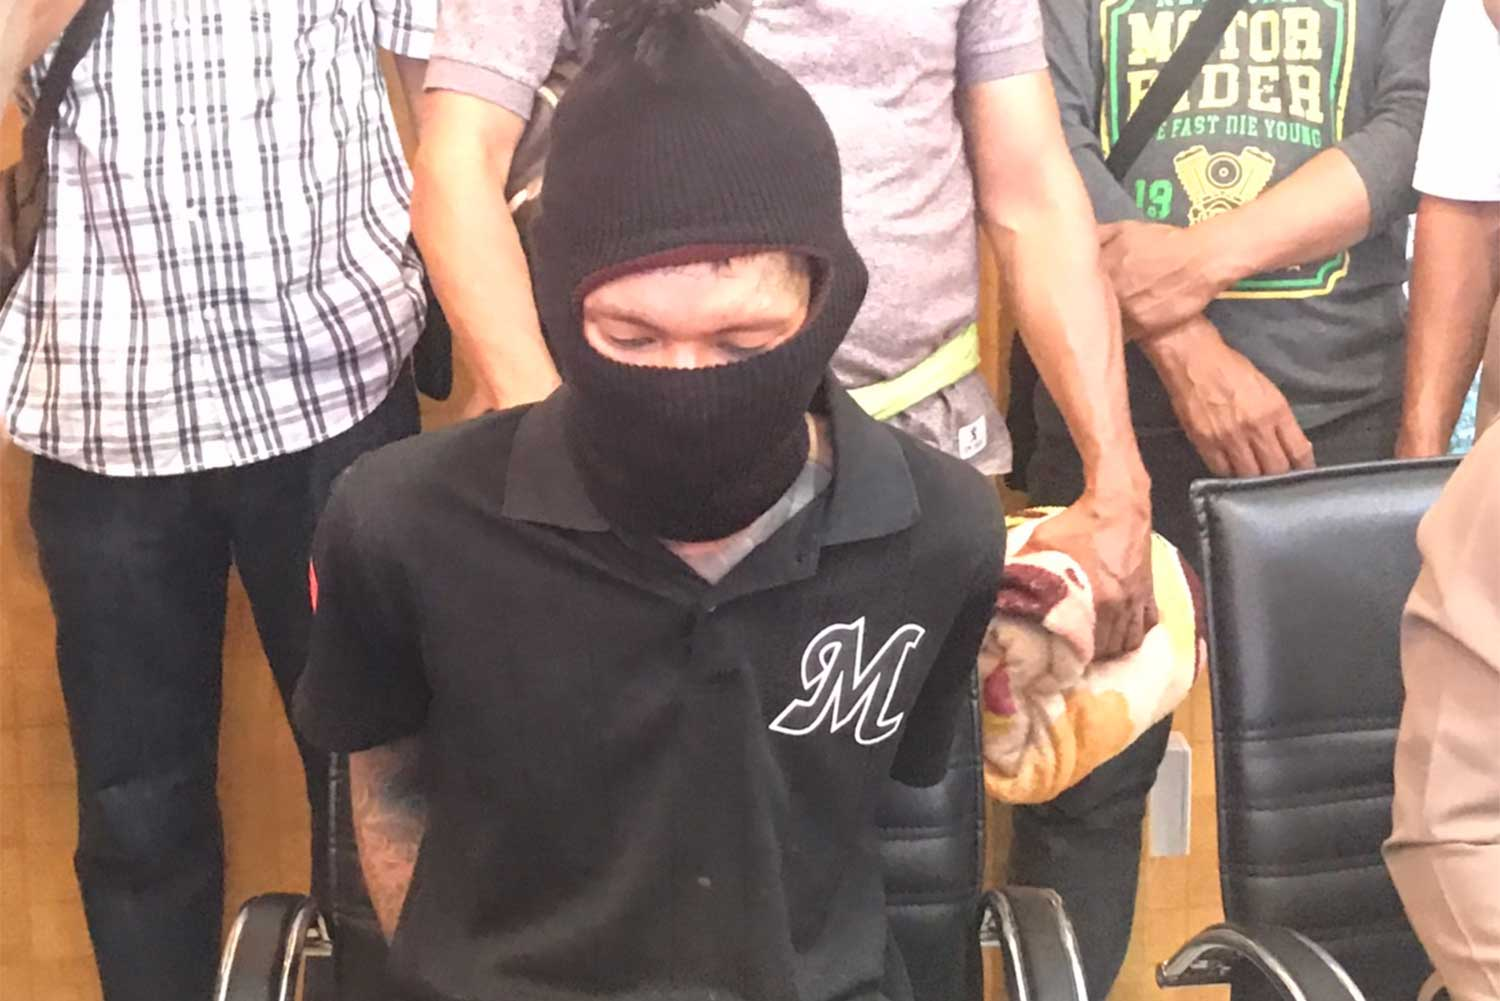 Suspect Theeraphol Duangkrathok, 26. Arrested on Thursday and charged with stabbing to death a 29-year-old woman, a wife of a Singaporean businessman, at her house in Nakhon Ratchasima on Tuesday afternoon. (Photo: Prasit Tangprasert)